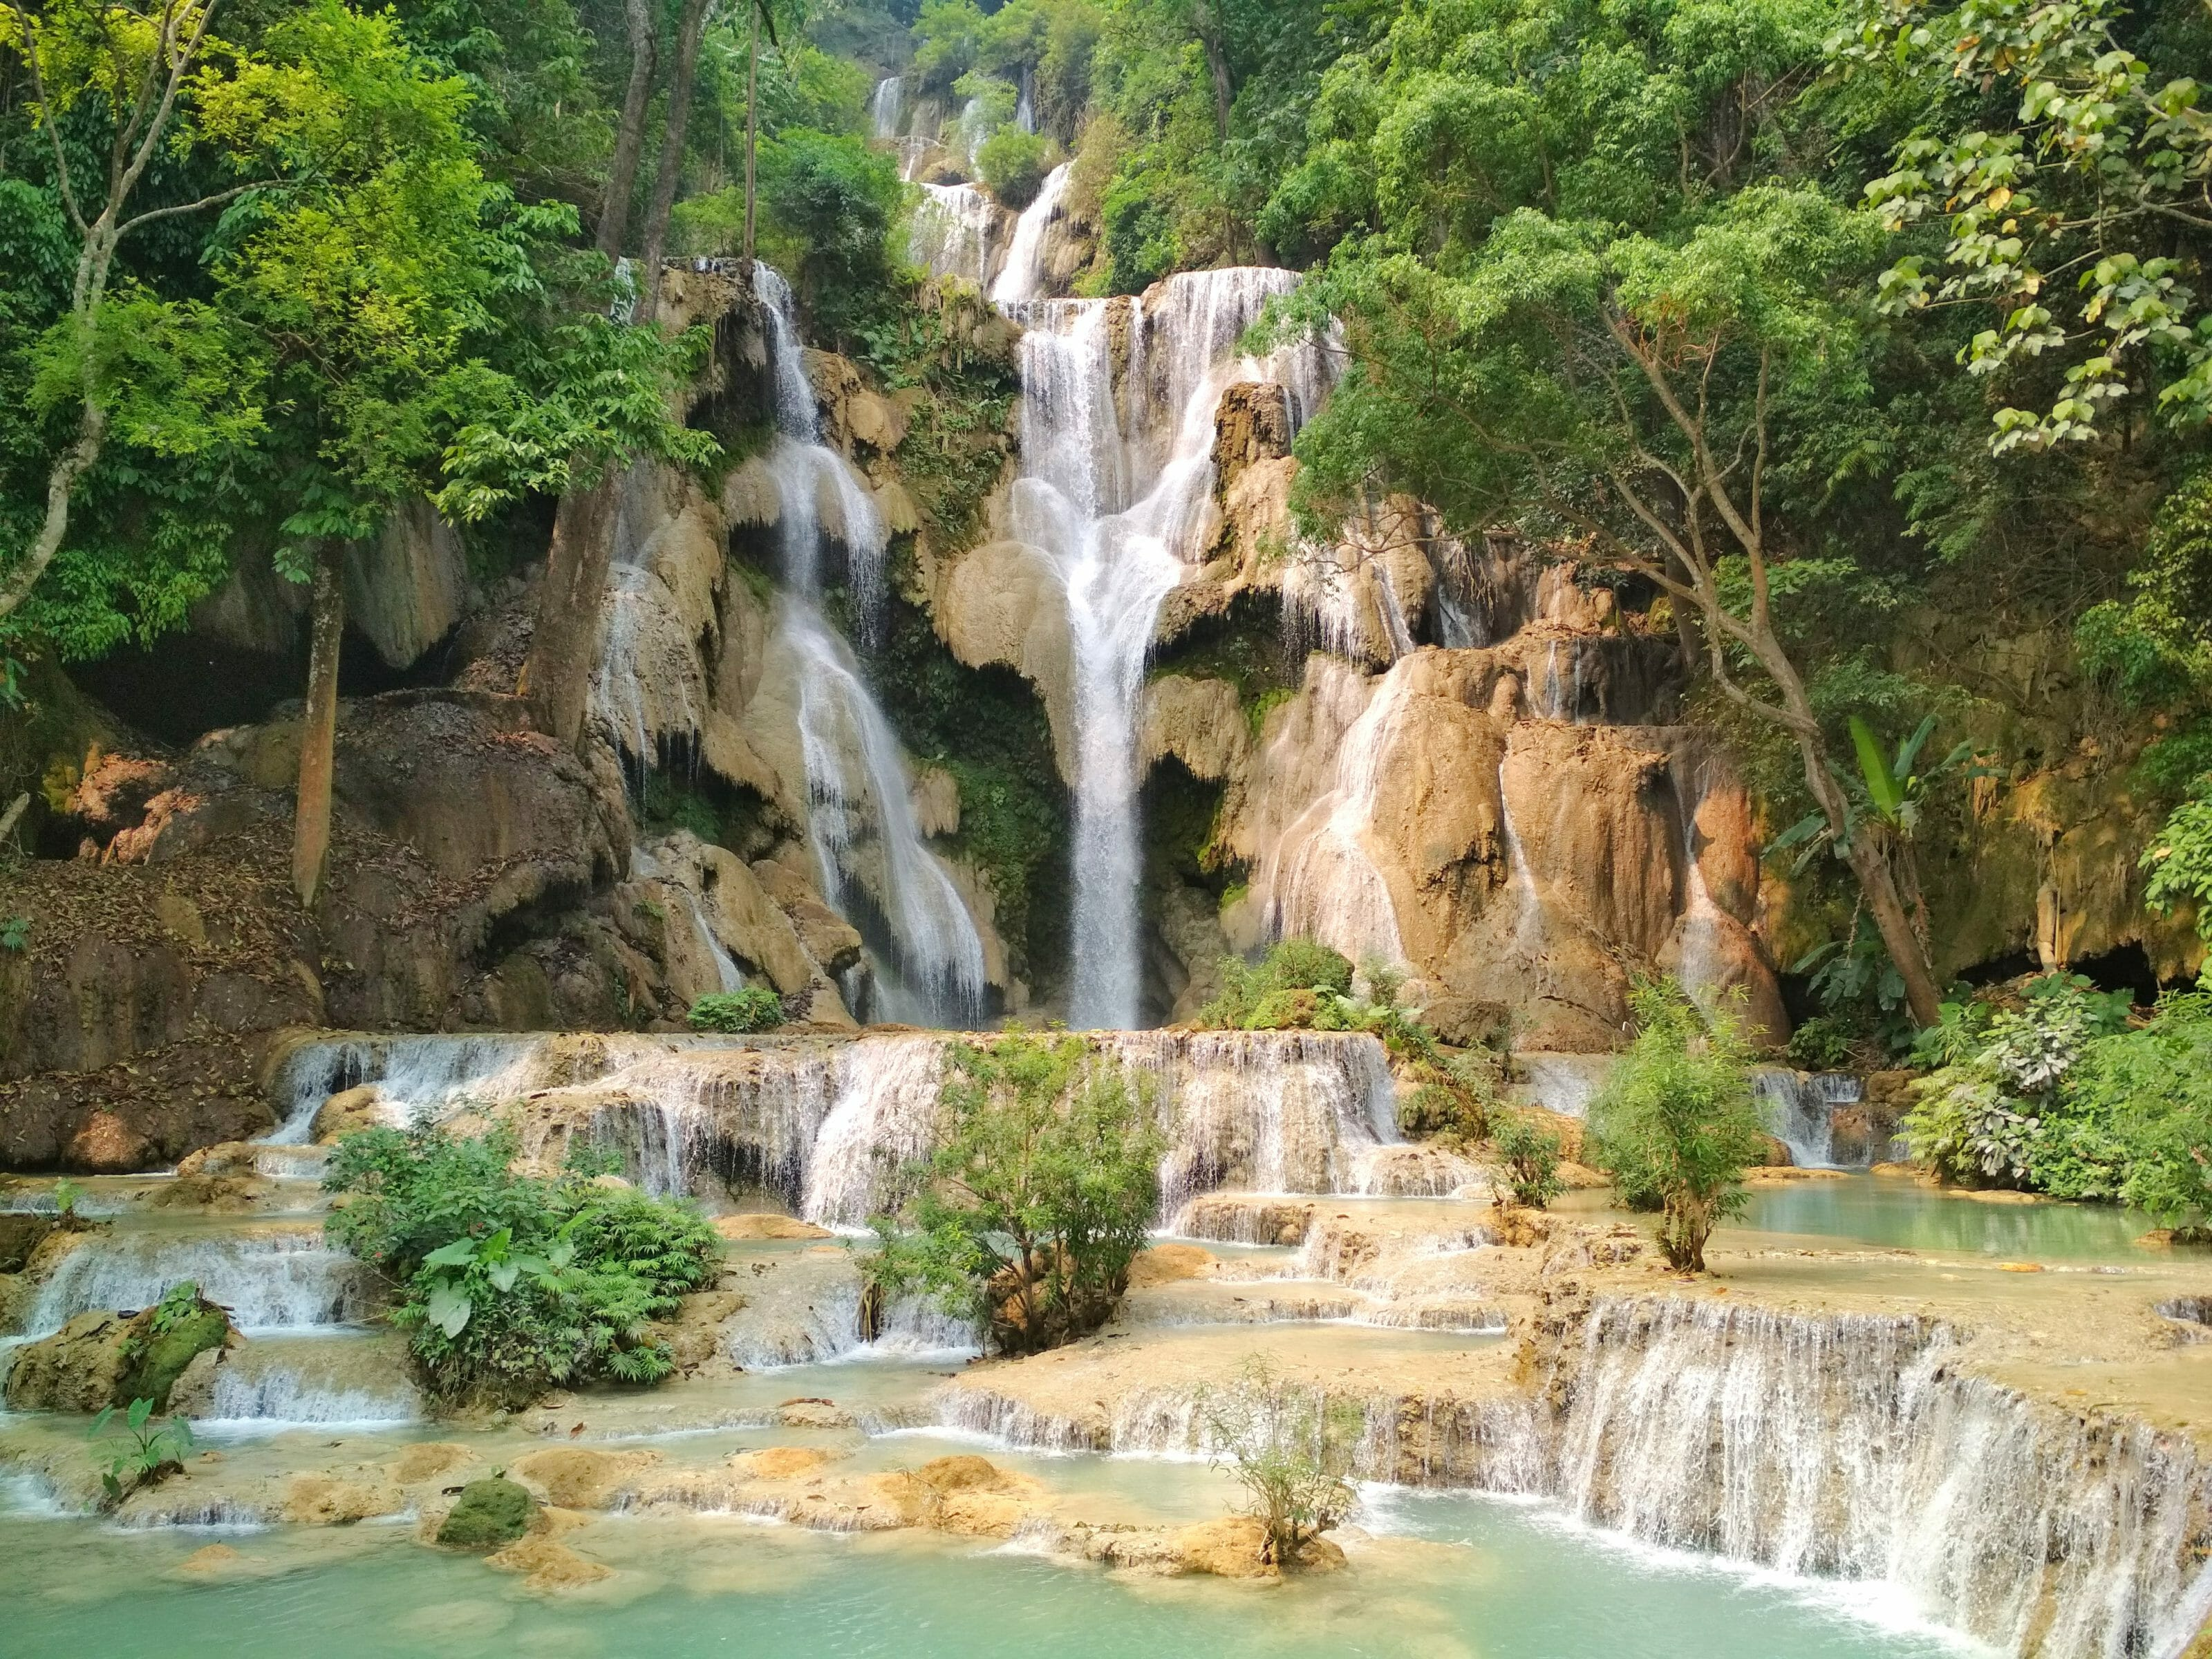 Kuang waterfall if in Laos around the world